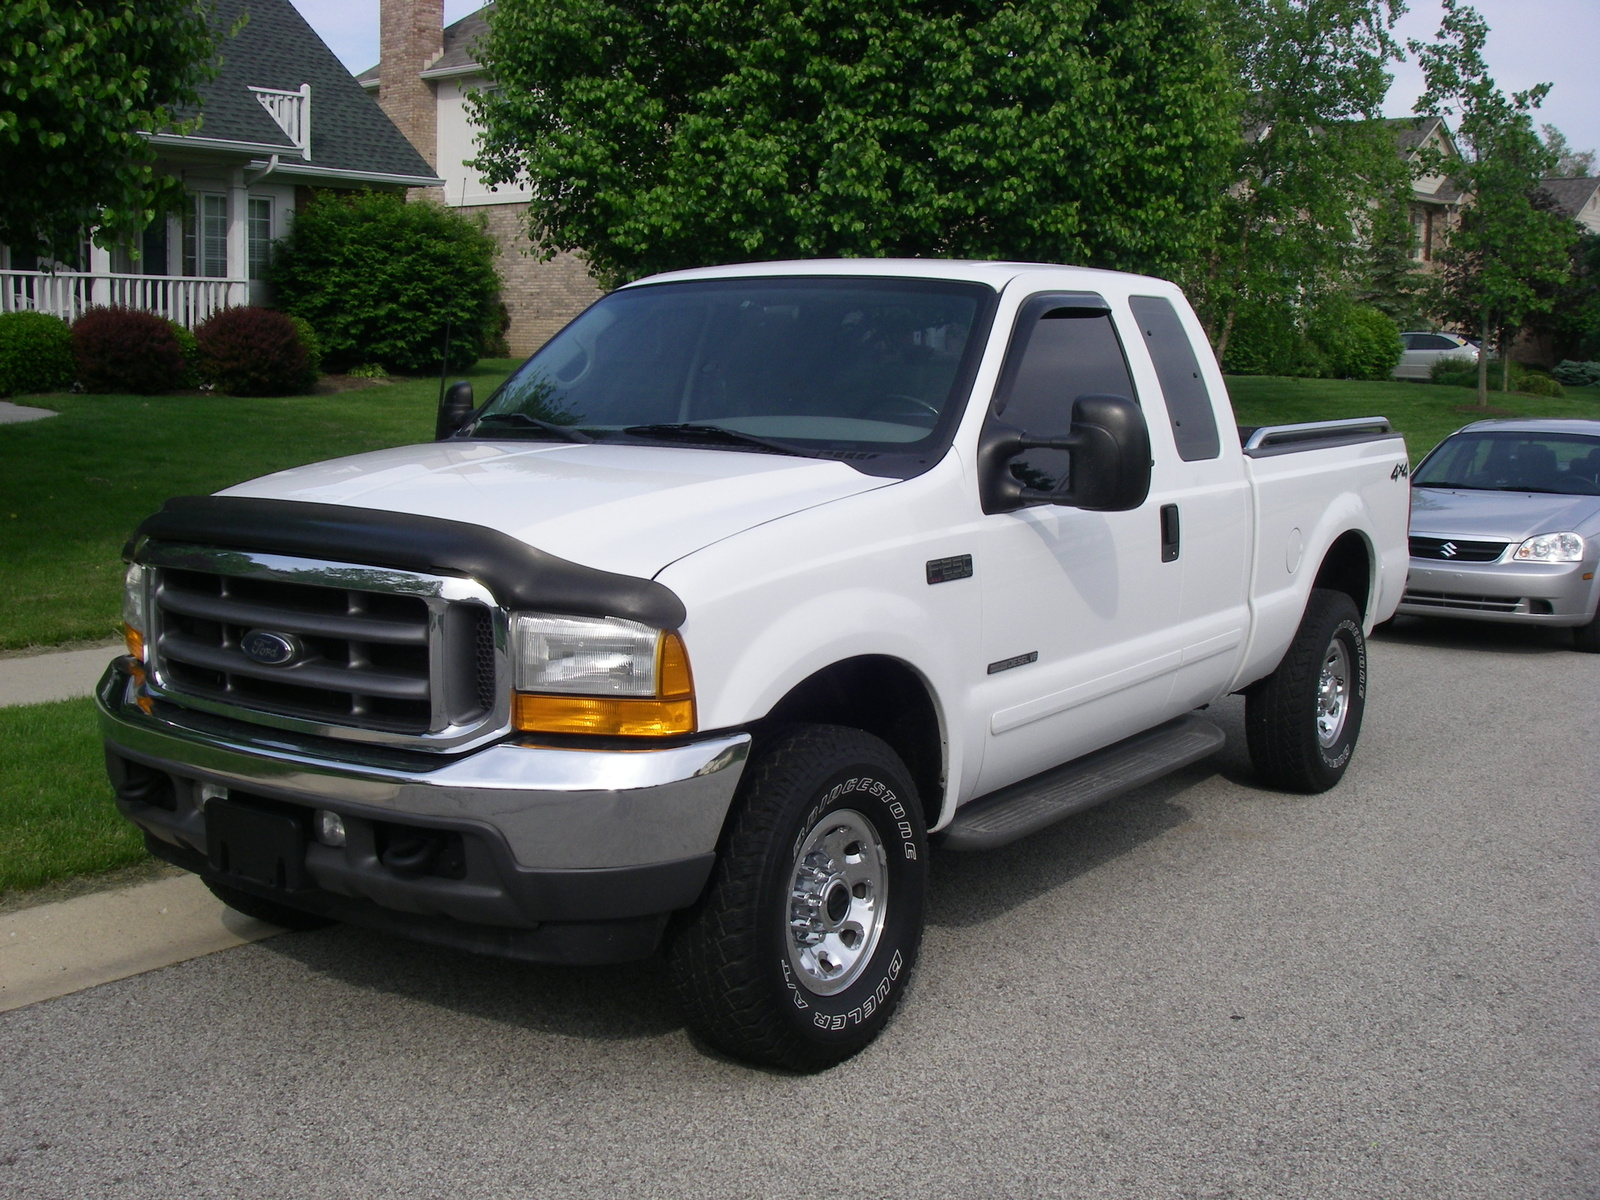 1999 ford f 250 super duty image 8